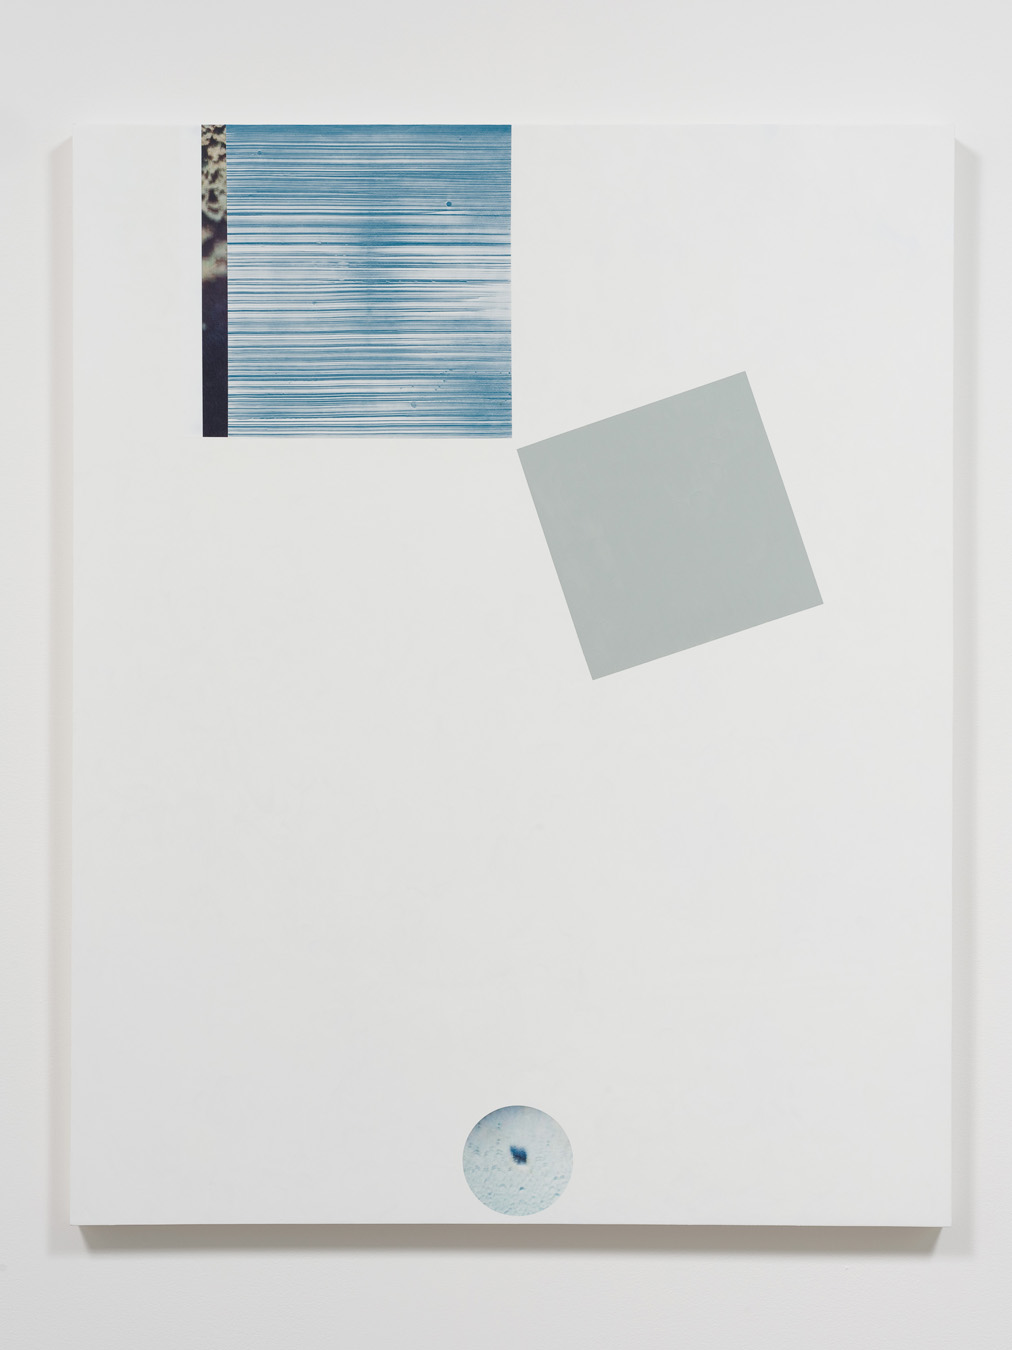 Salton Sea (ground), 2012  Acrylic, oil and UV cured ink on canvas over panel  60 x 48 inches  152.4 x 121.92 cm